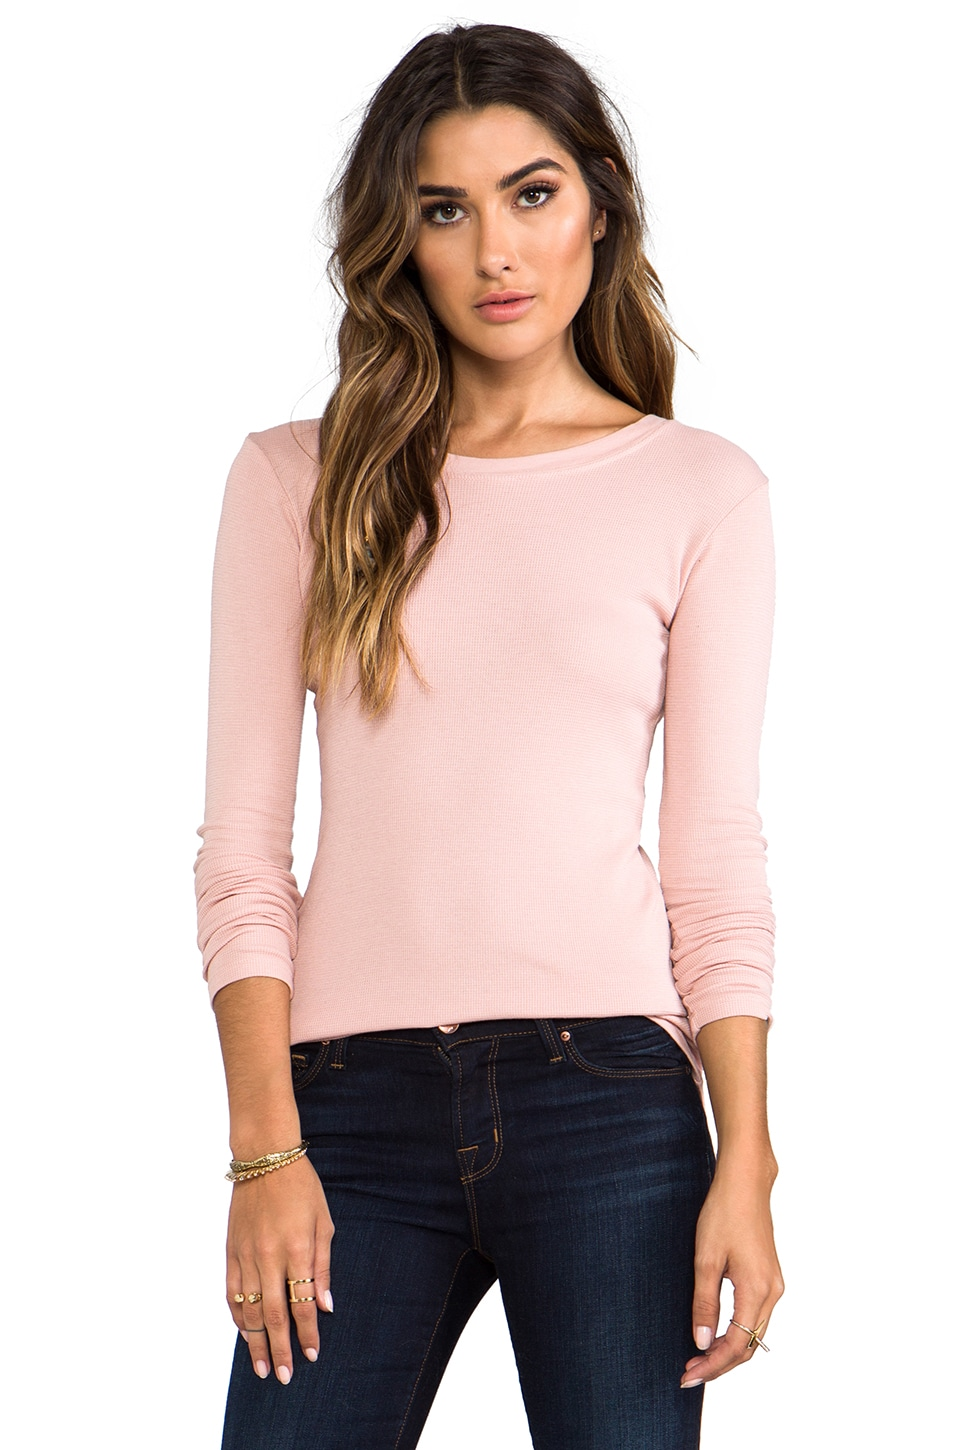 LA Made Thermal Long Sleeve Crew Neck Top in Rosebud